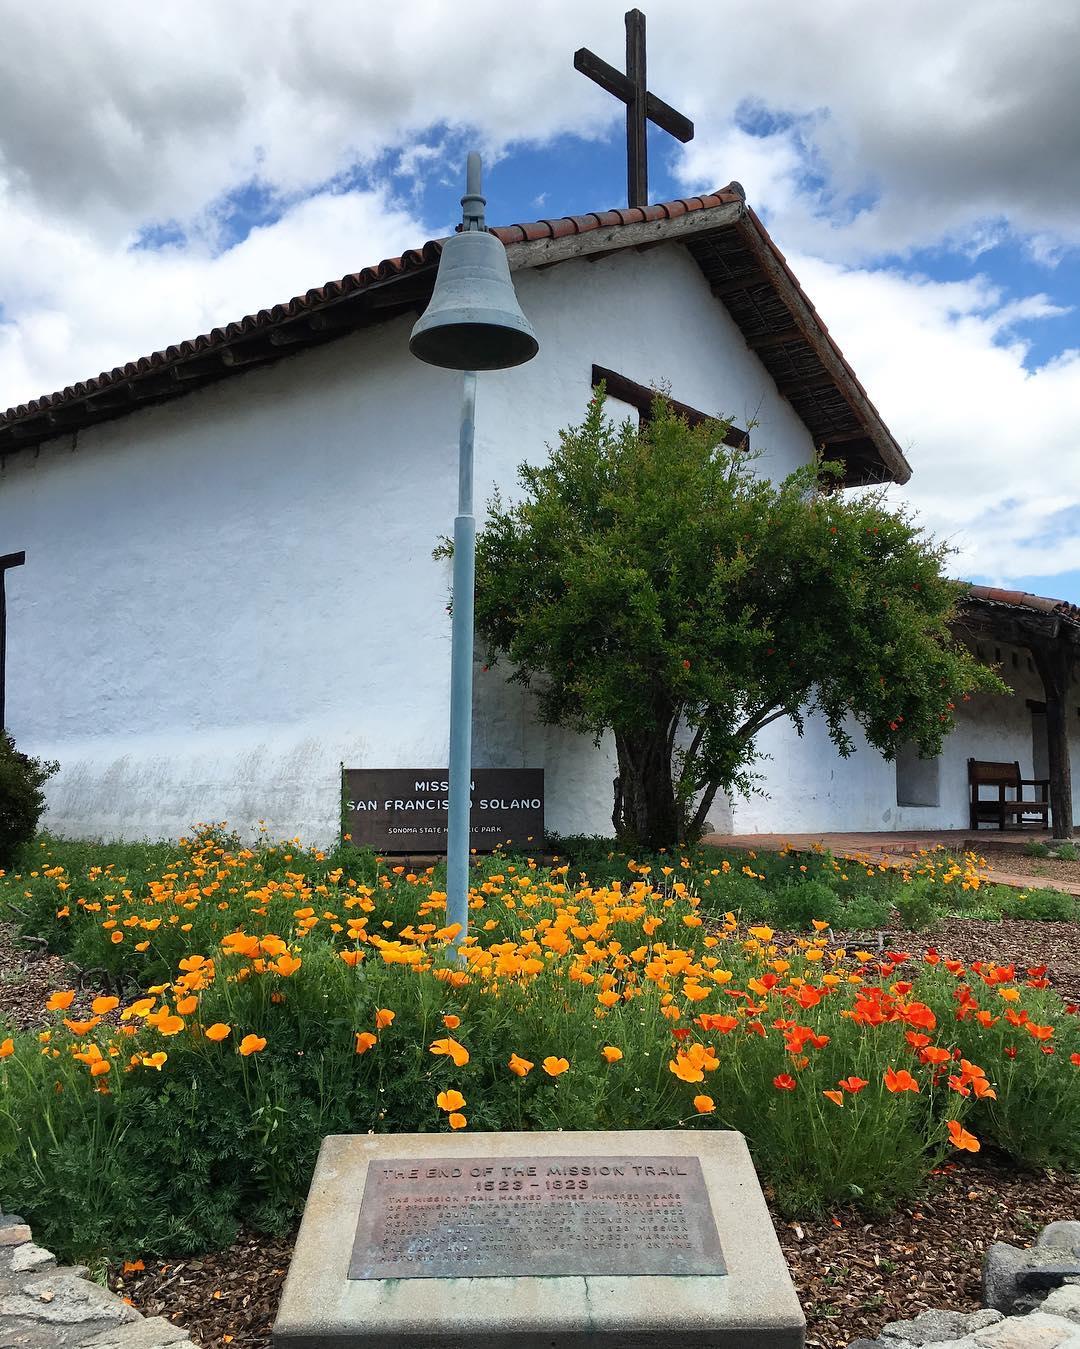 A local's guide to Sonoma, California - Earth's Attractions - travel guides by locals, travel itineraries, travel tips, and more